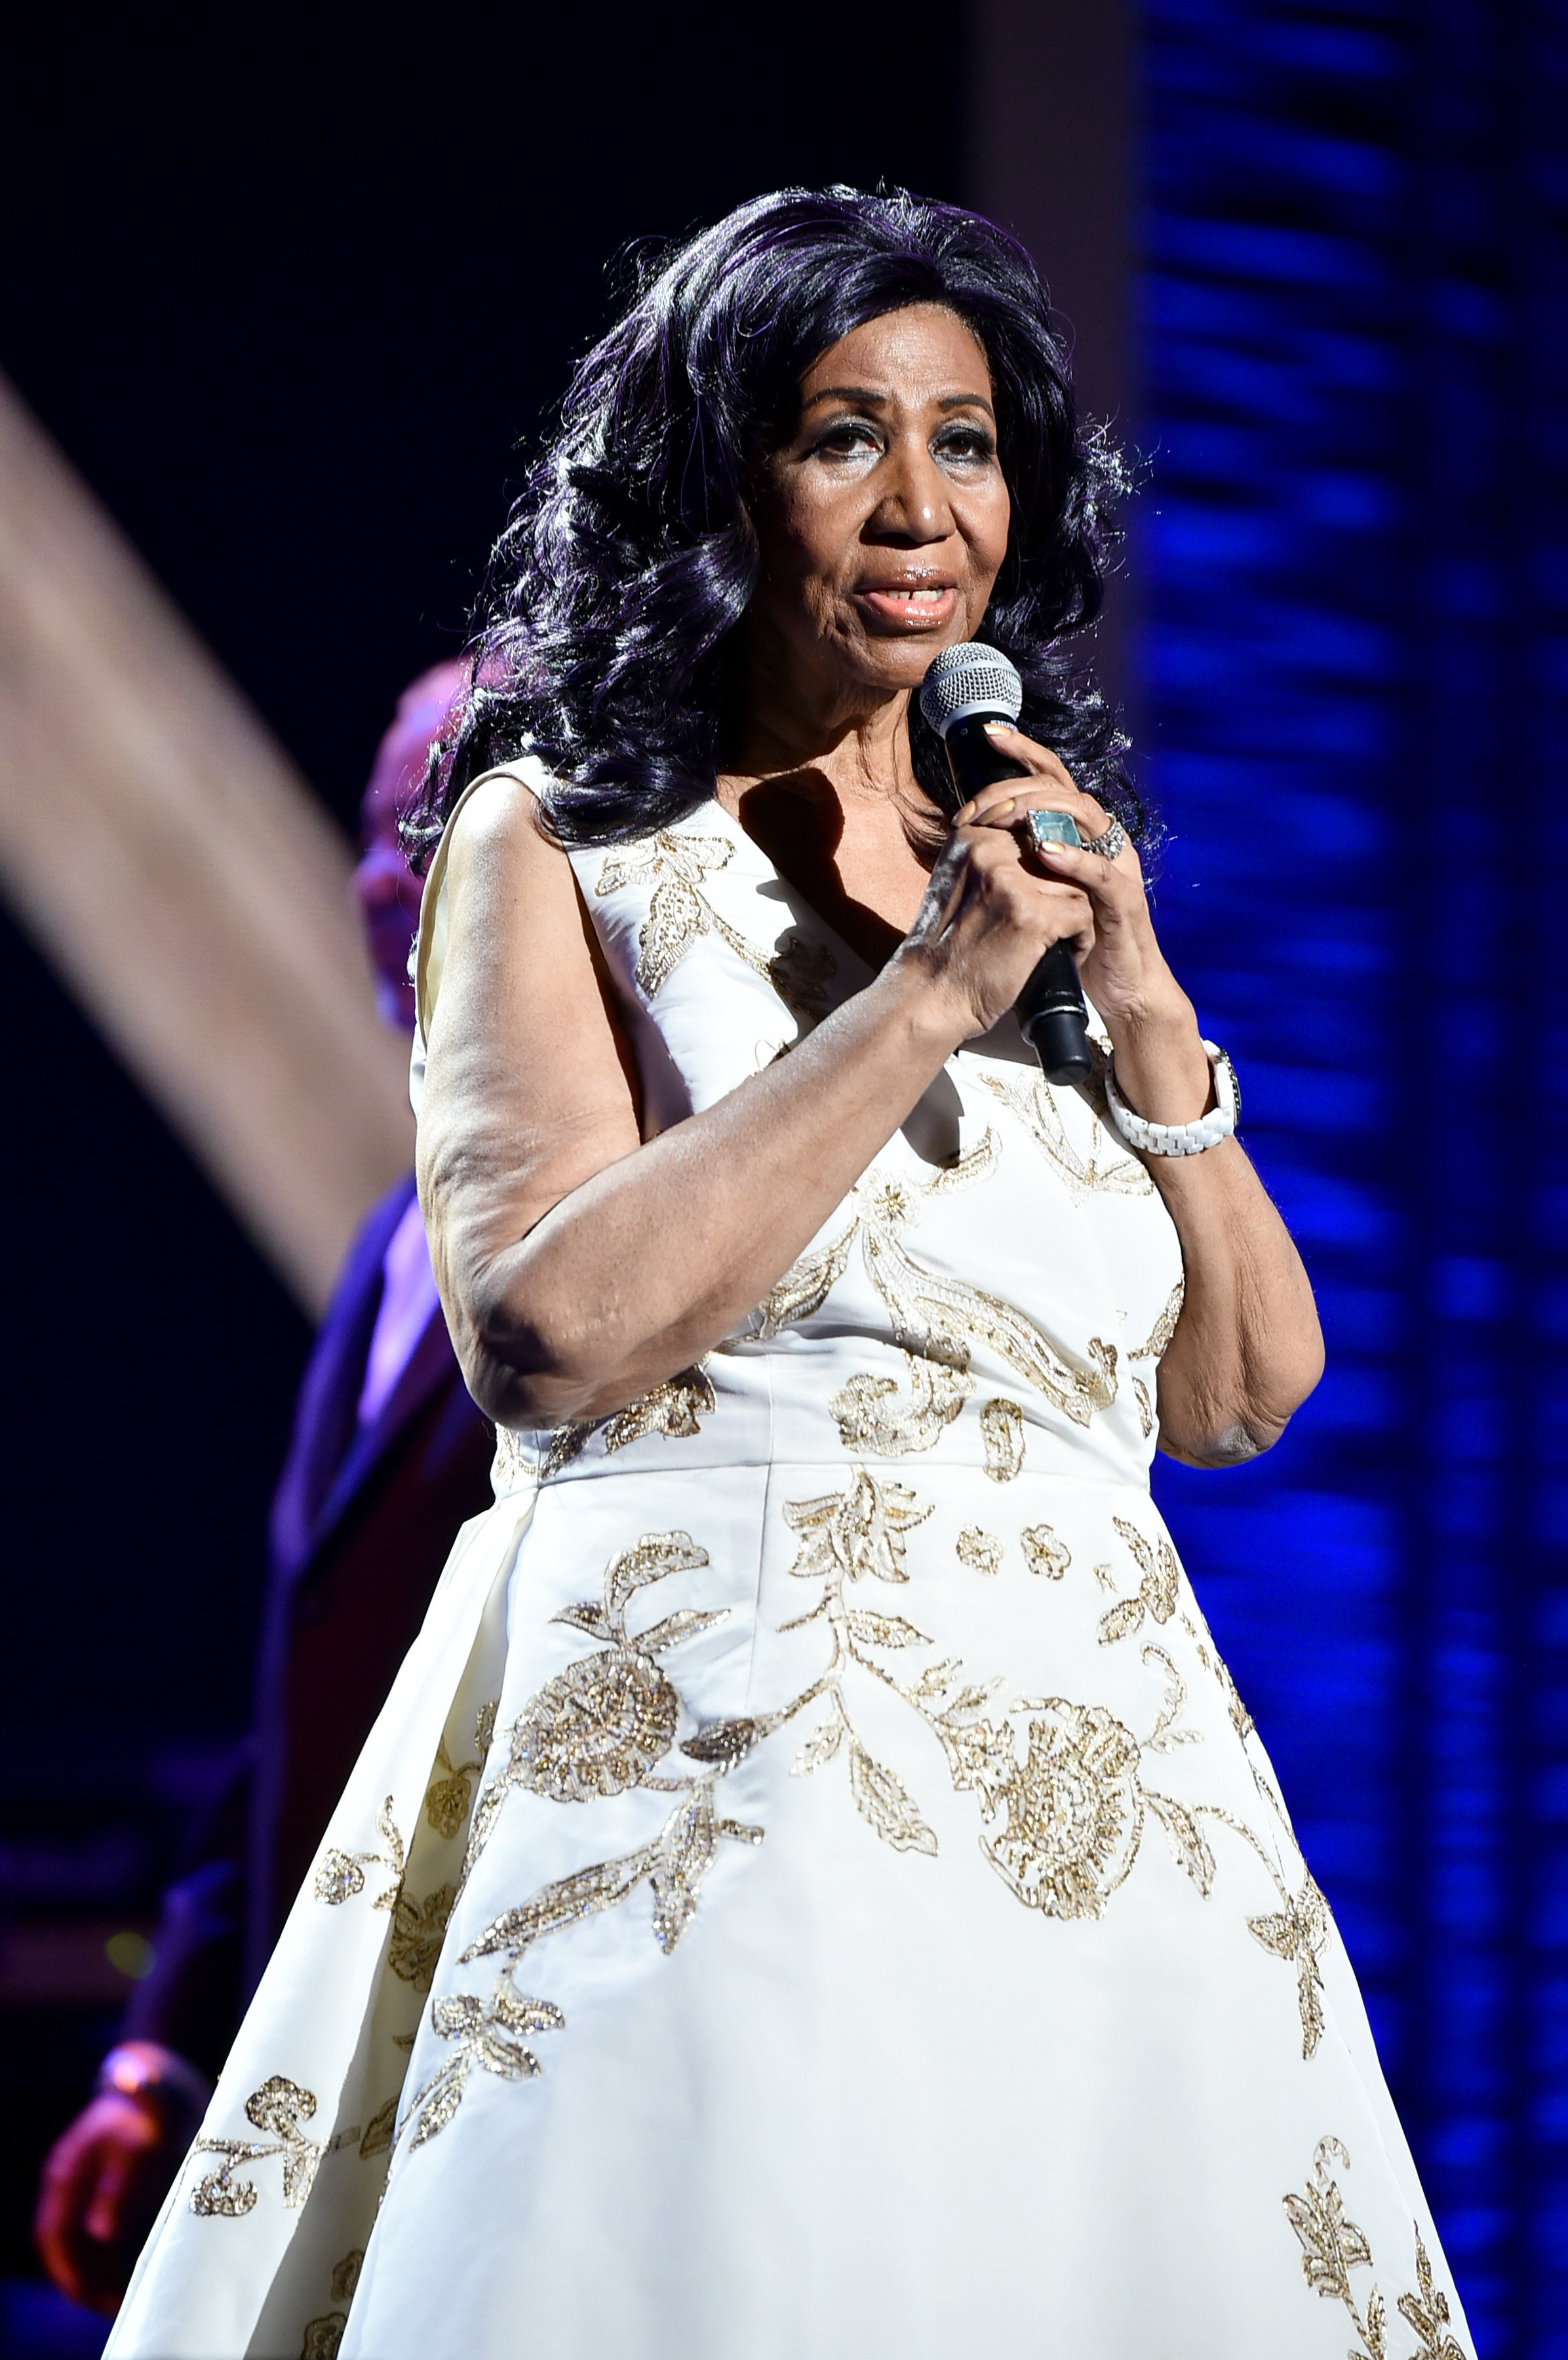 Aretha Franklin performs onstage during the Tribeca Film Festival on April 19, 2017, in New York City. | Source: Getty Images.